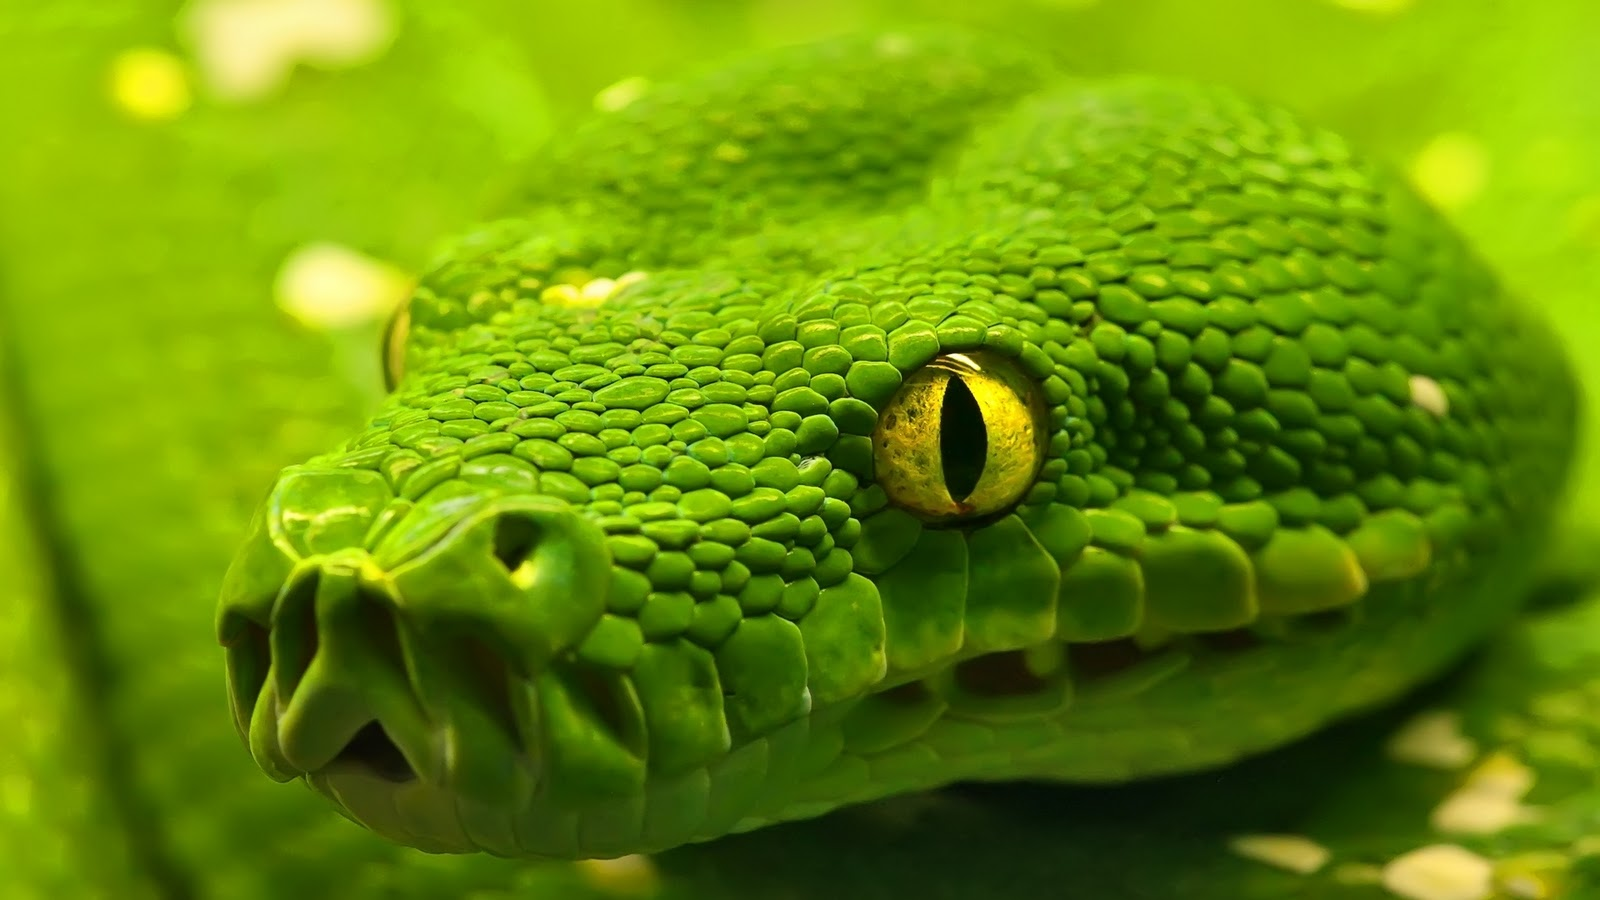 18 Snakes Wallpapers HD HD Wallpapers Backgrounds Photos Pictures 1600x900